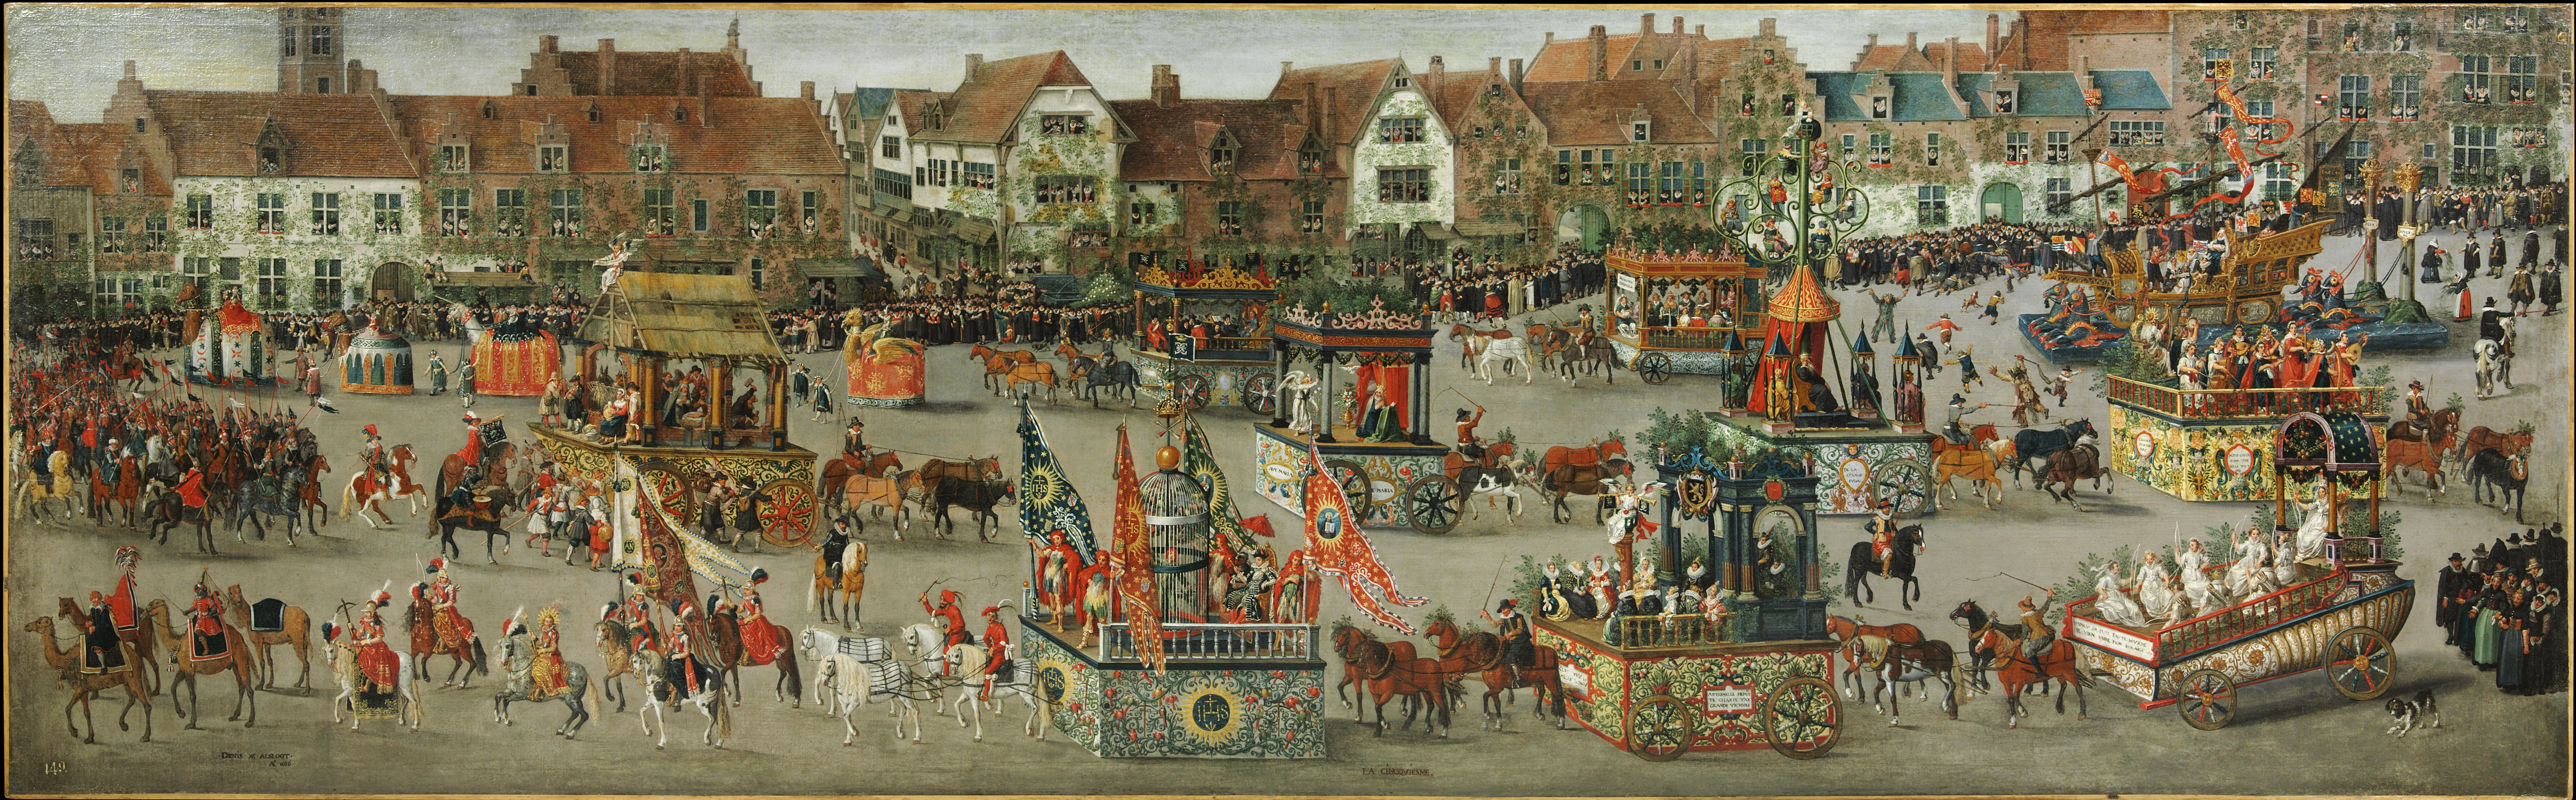 Denis van Alsloot. The Ommeganck in Brussels on 31 May 1615. The Triumph of Archduchess Isabella